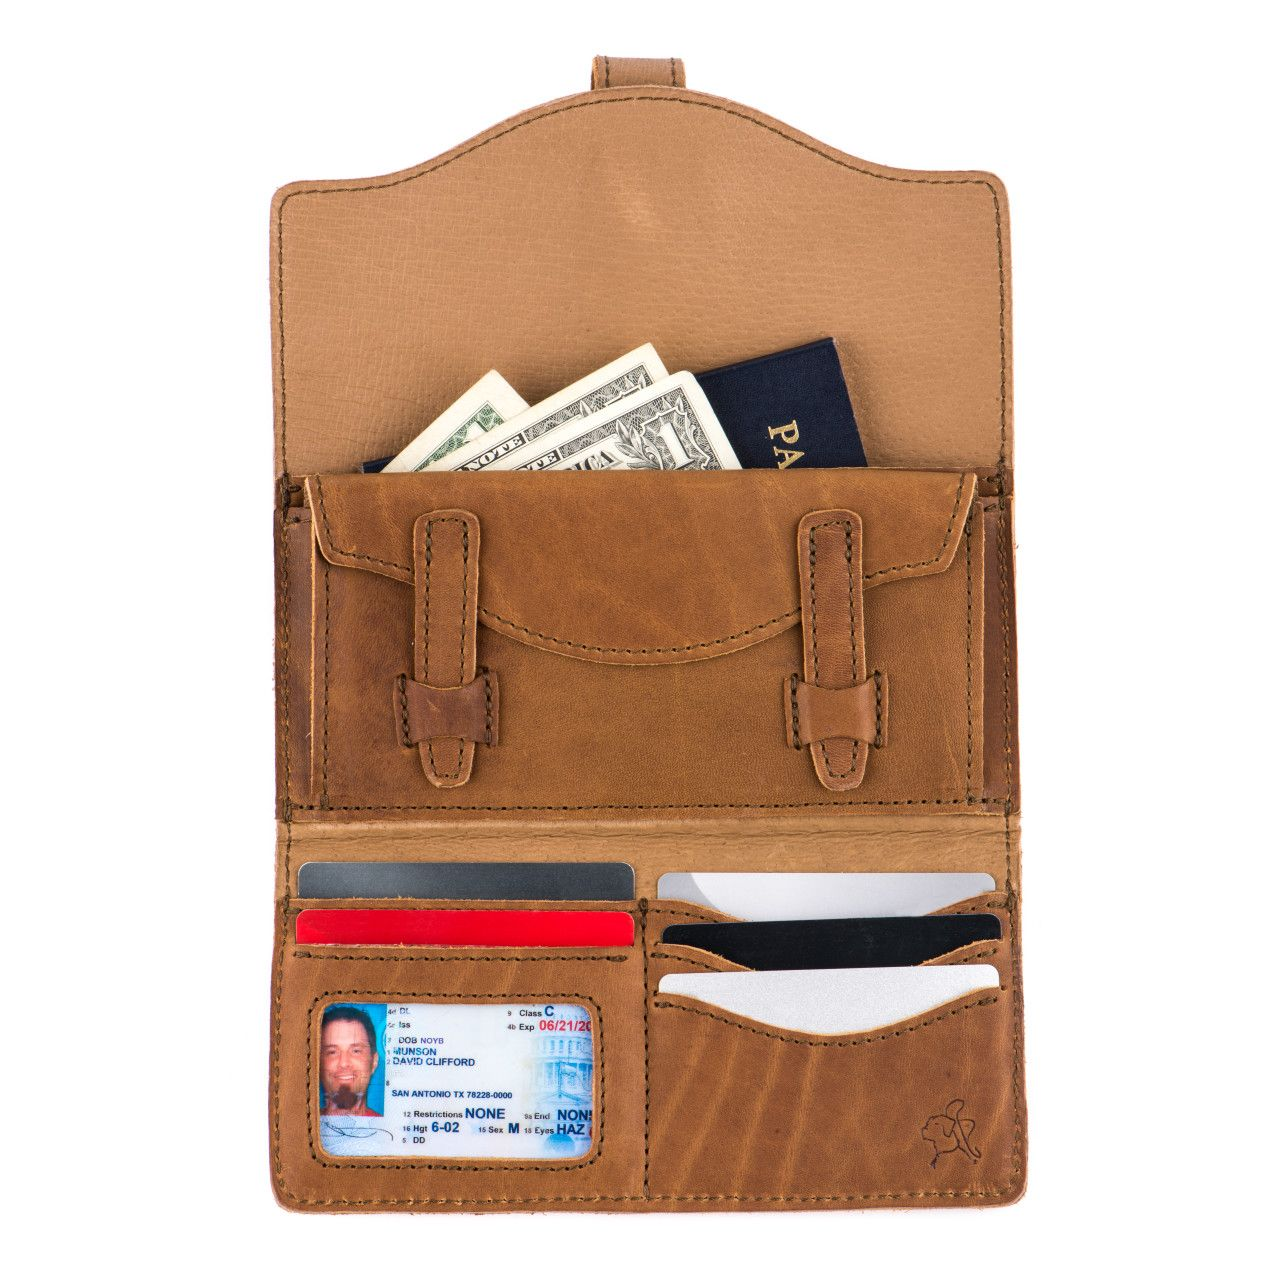 long trifold leather wallet in tobacco leather with full content: money, passport, card, driver's license